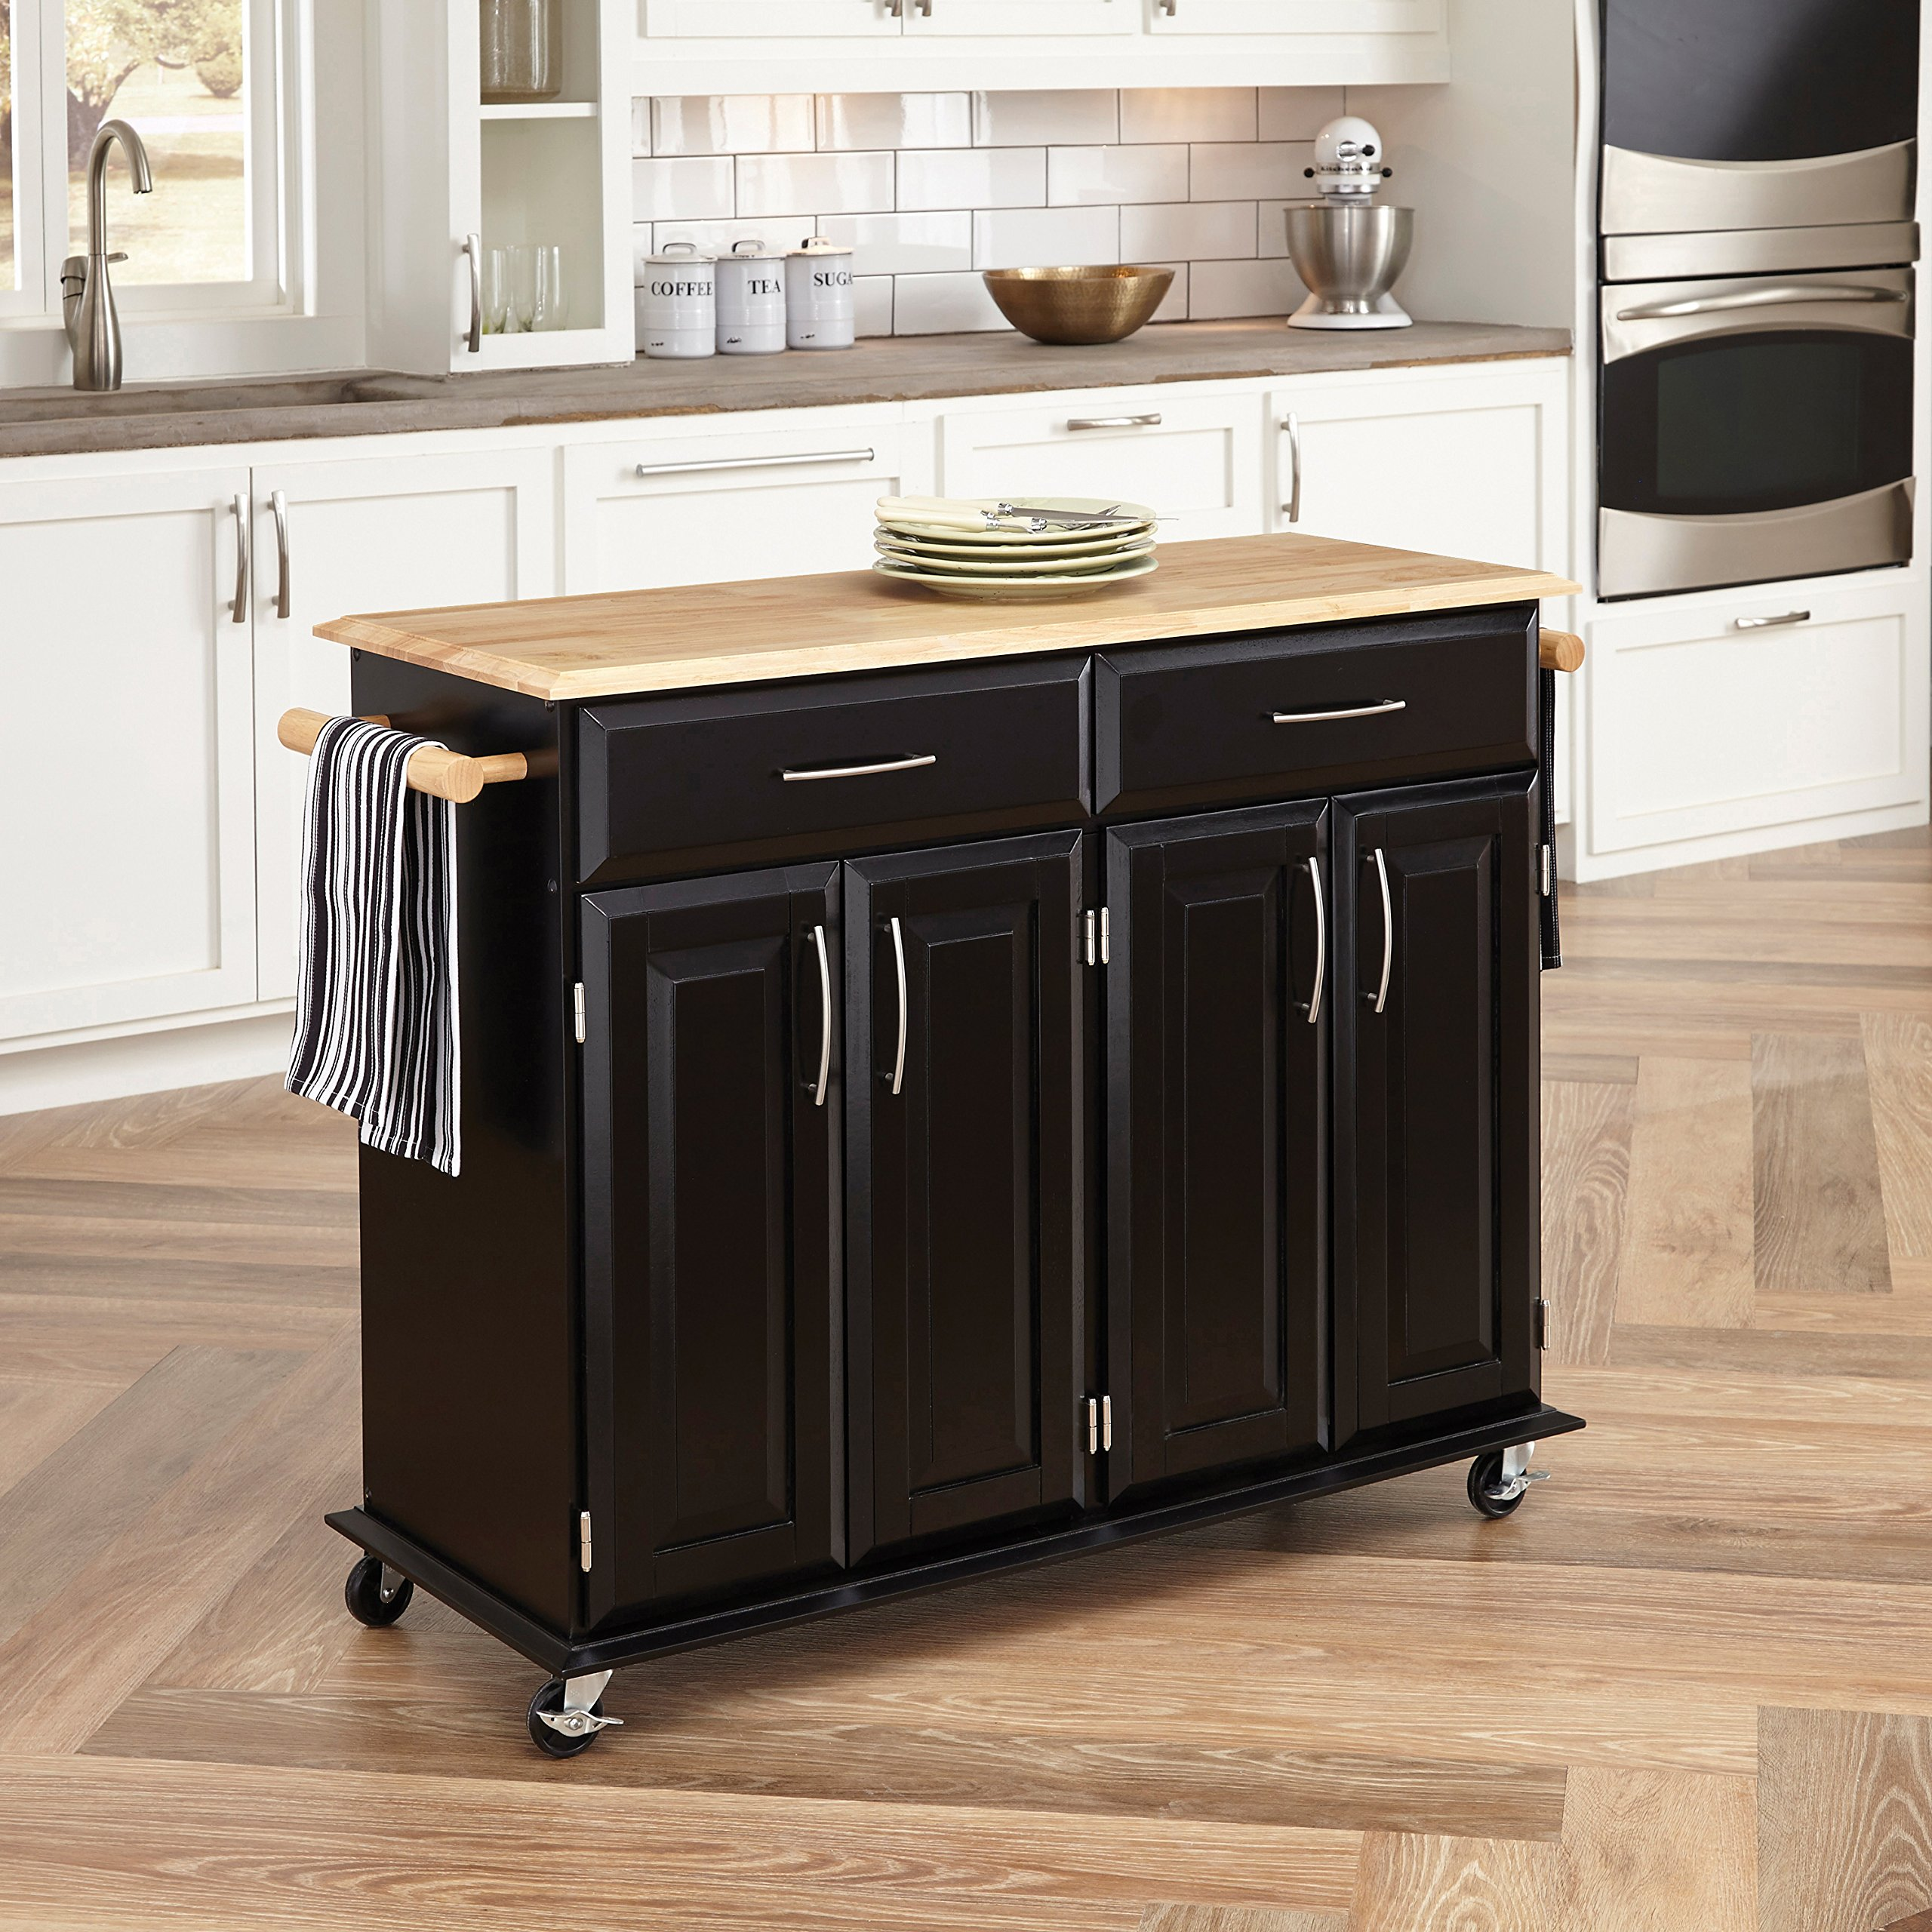 Dolly Madison Black Kitchen Cart by Home Styles by Home Styles